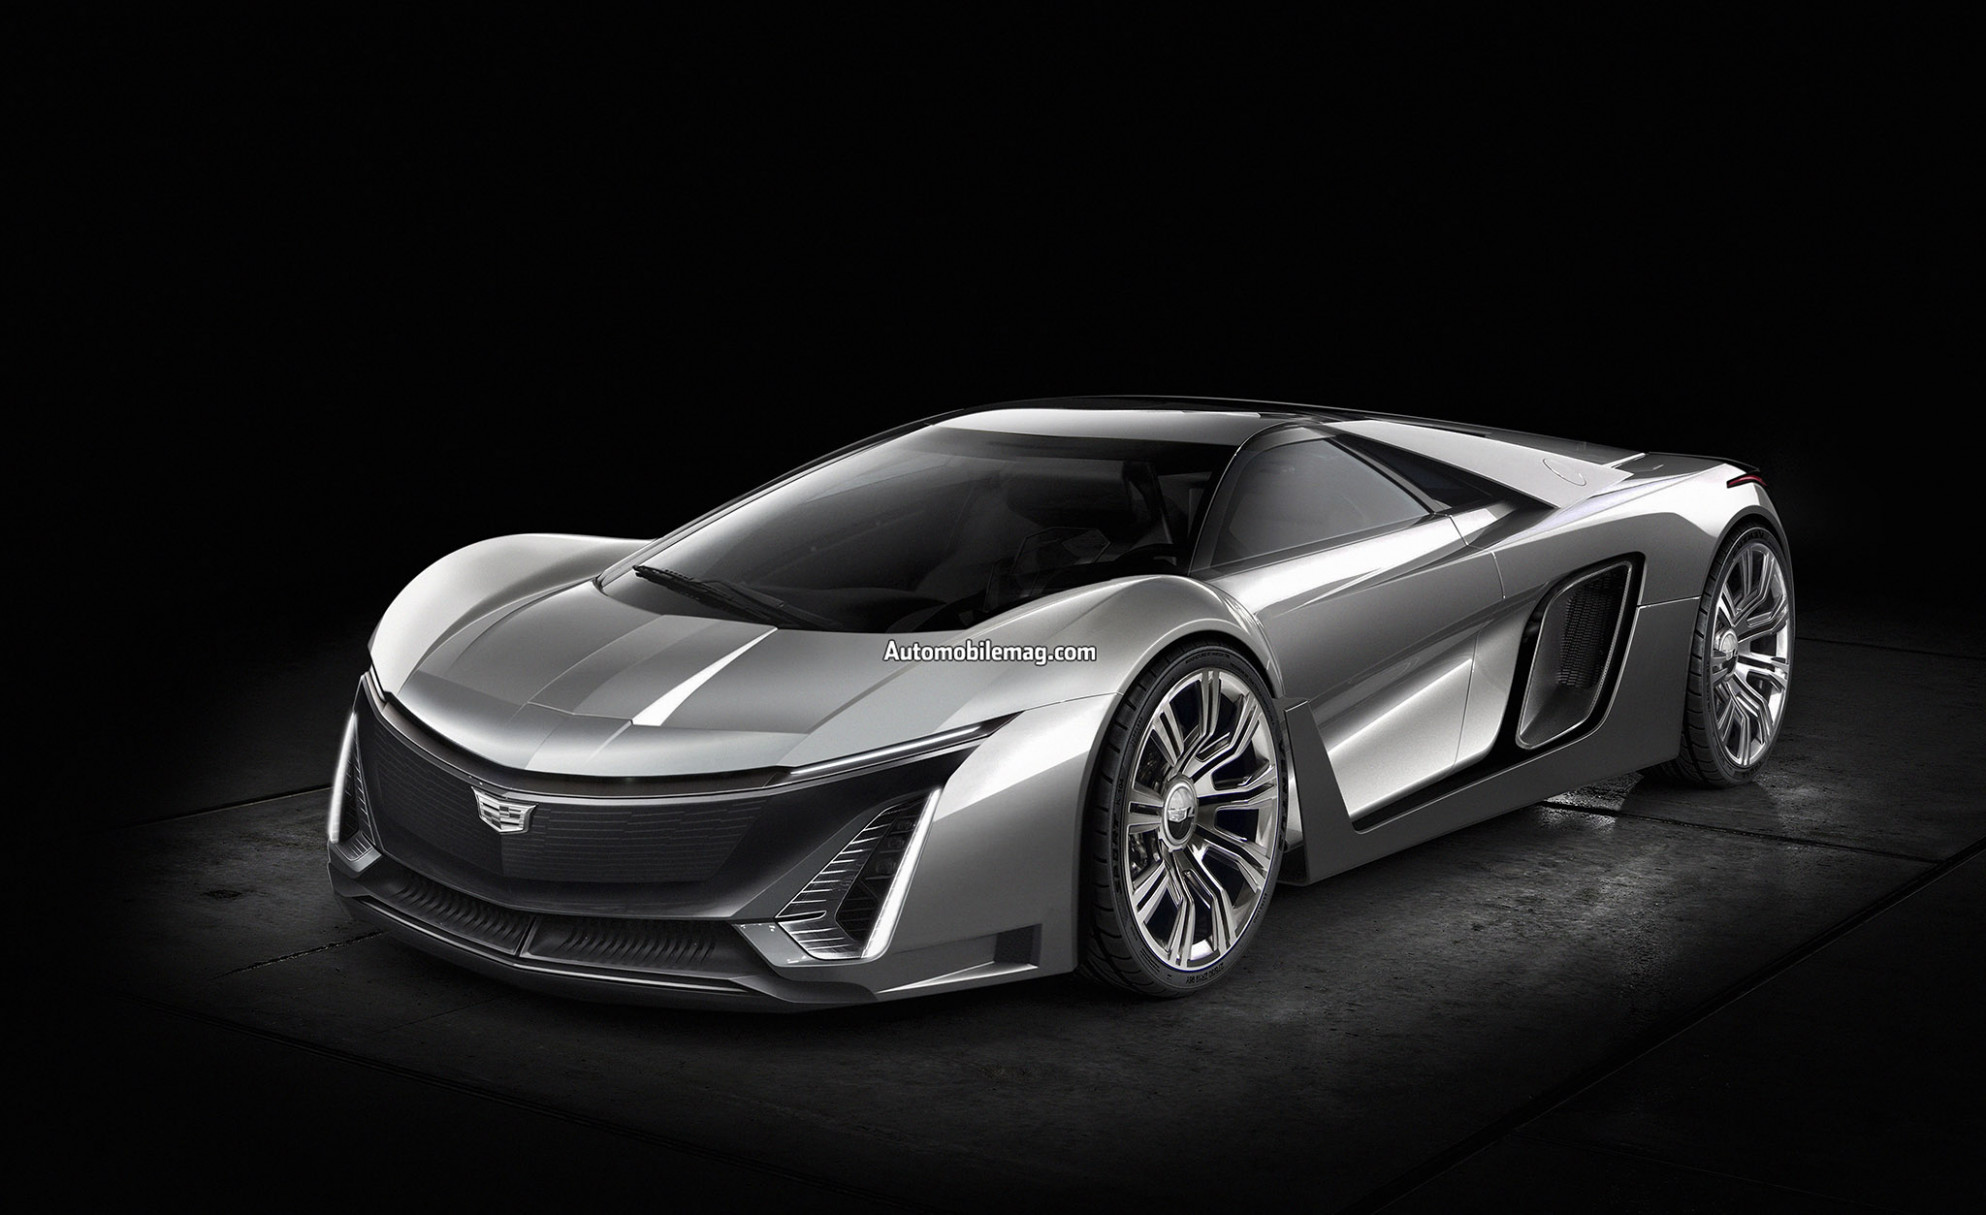 What if Cadillac Built a Halo Supercar Based on the 10 Corvette C10? - 2020 cadillac with corvette engine